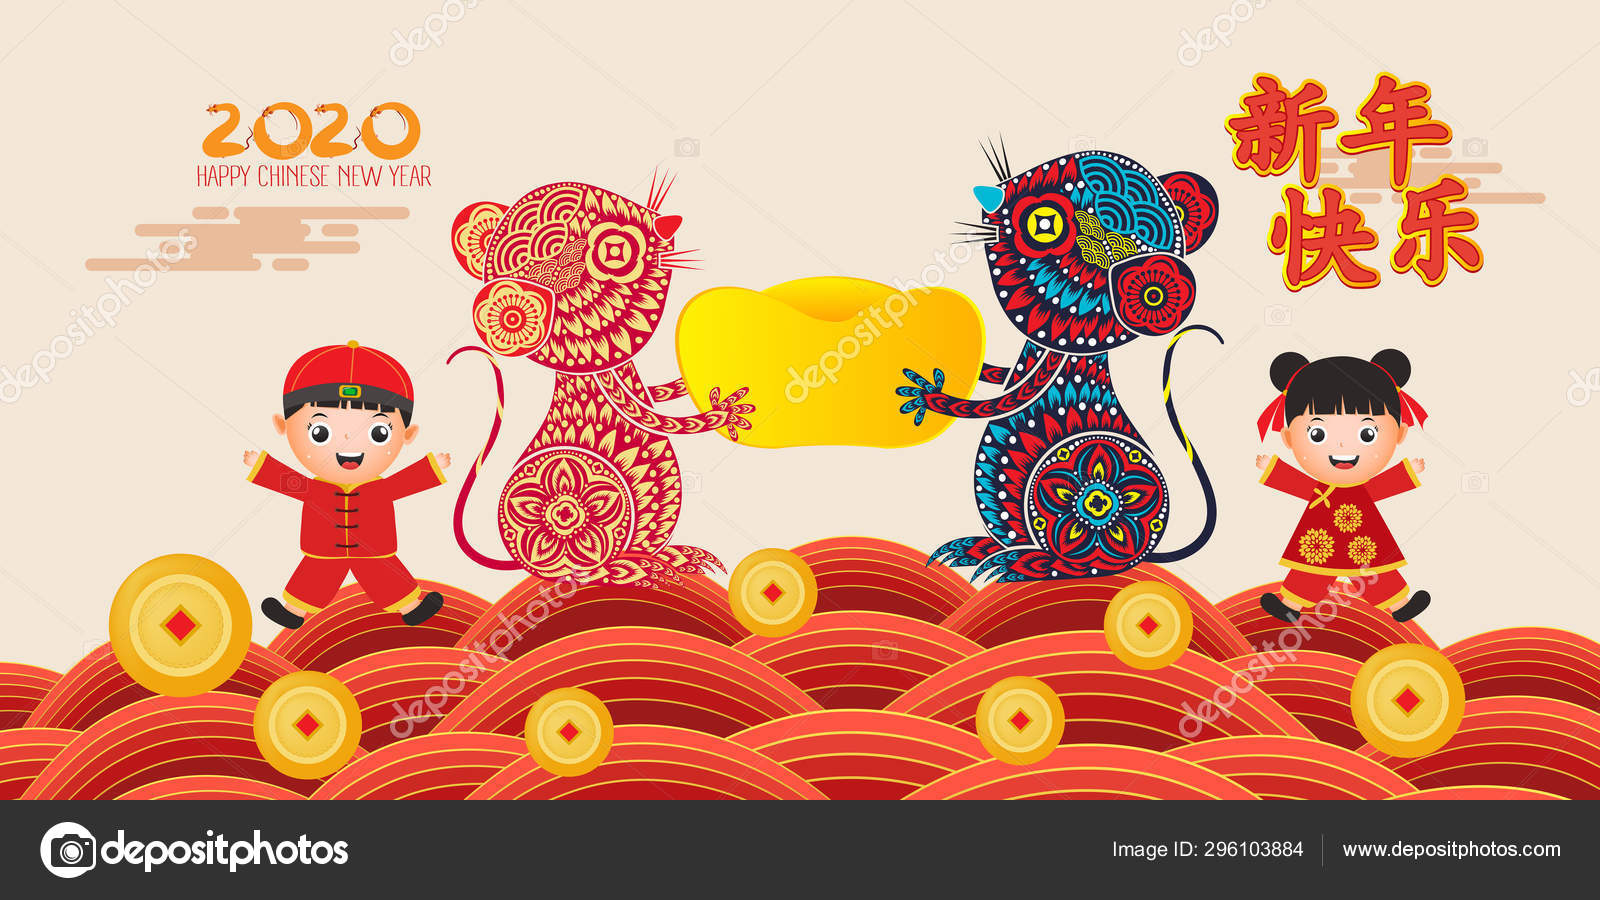 Happy New Year 2020 Chinese New Year Cute Boy And Girl Happy Smile The Year Of The Rat Translation Chinese New Year Stock Vector C Ngocdai86 296103884